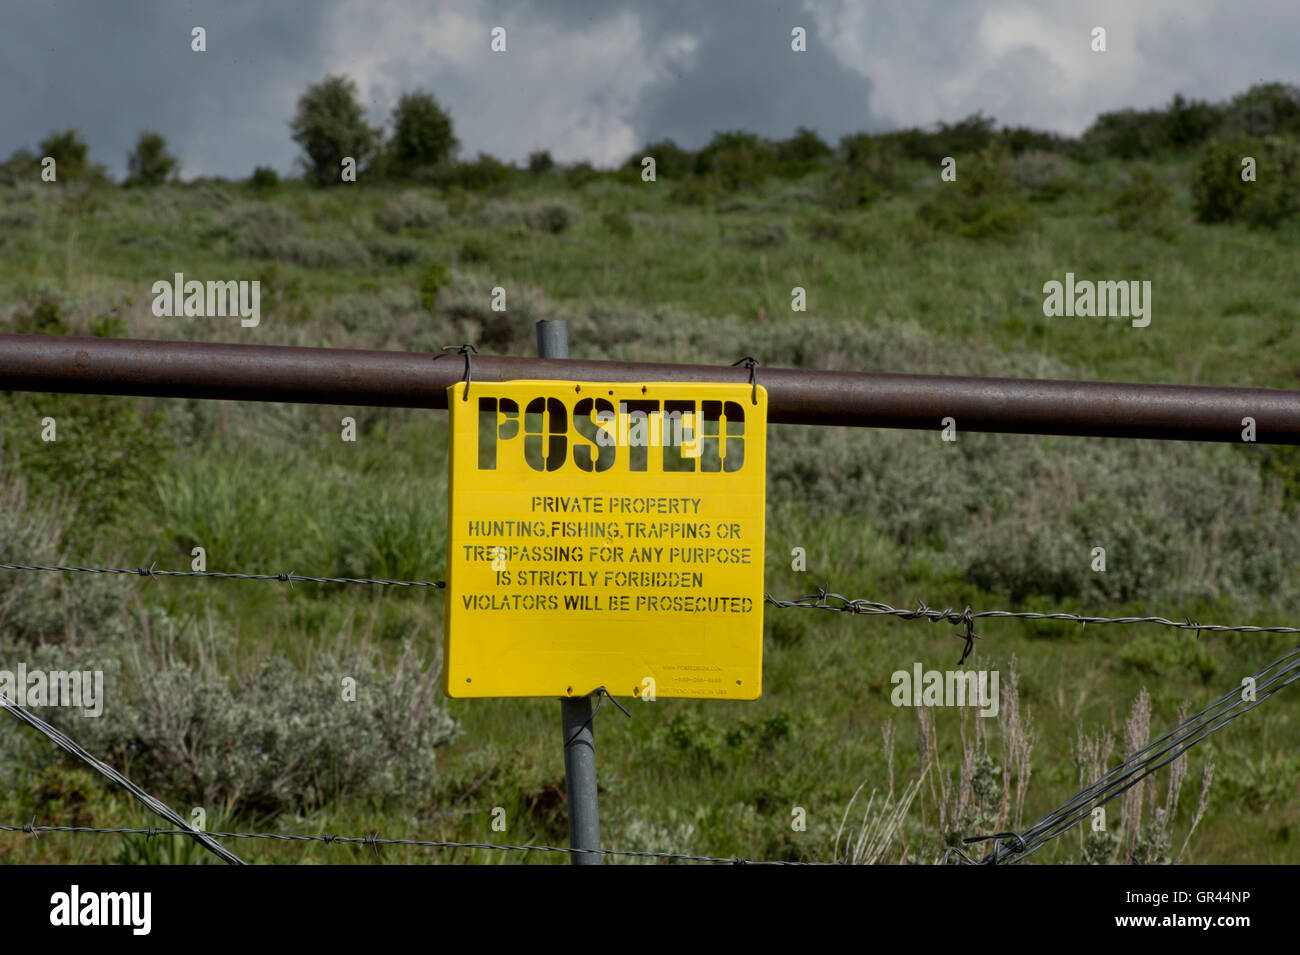 No trespassing sign on private land - Elmore County, ID - Stock Image